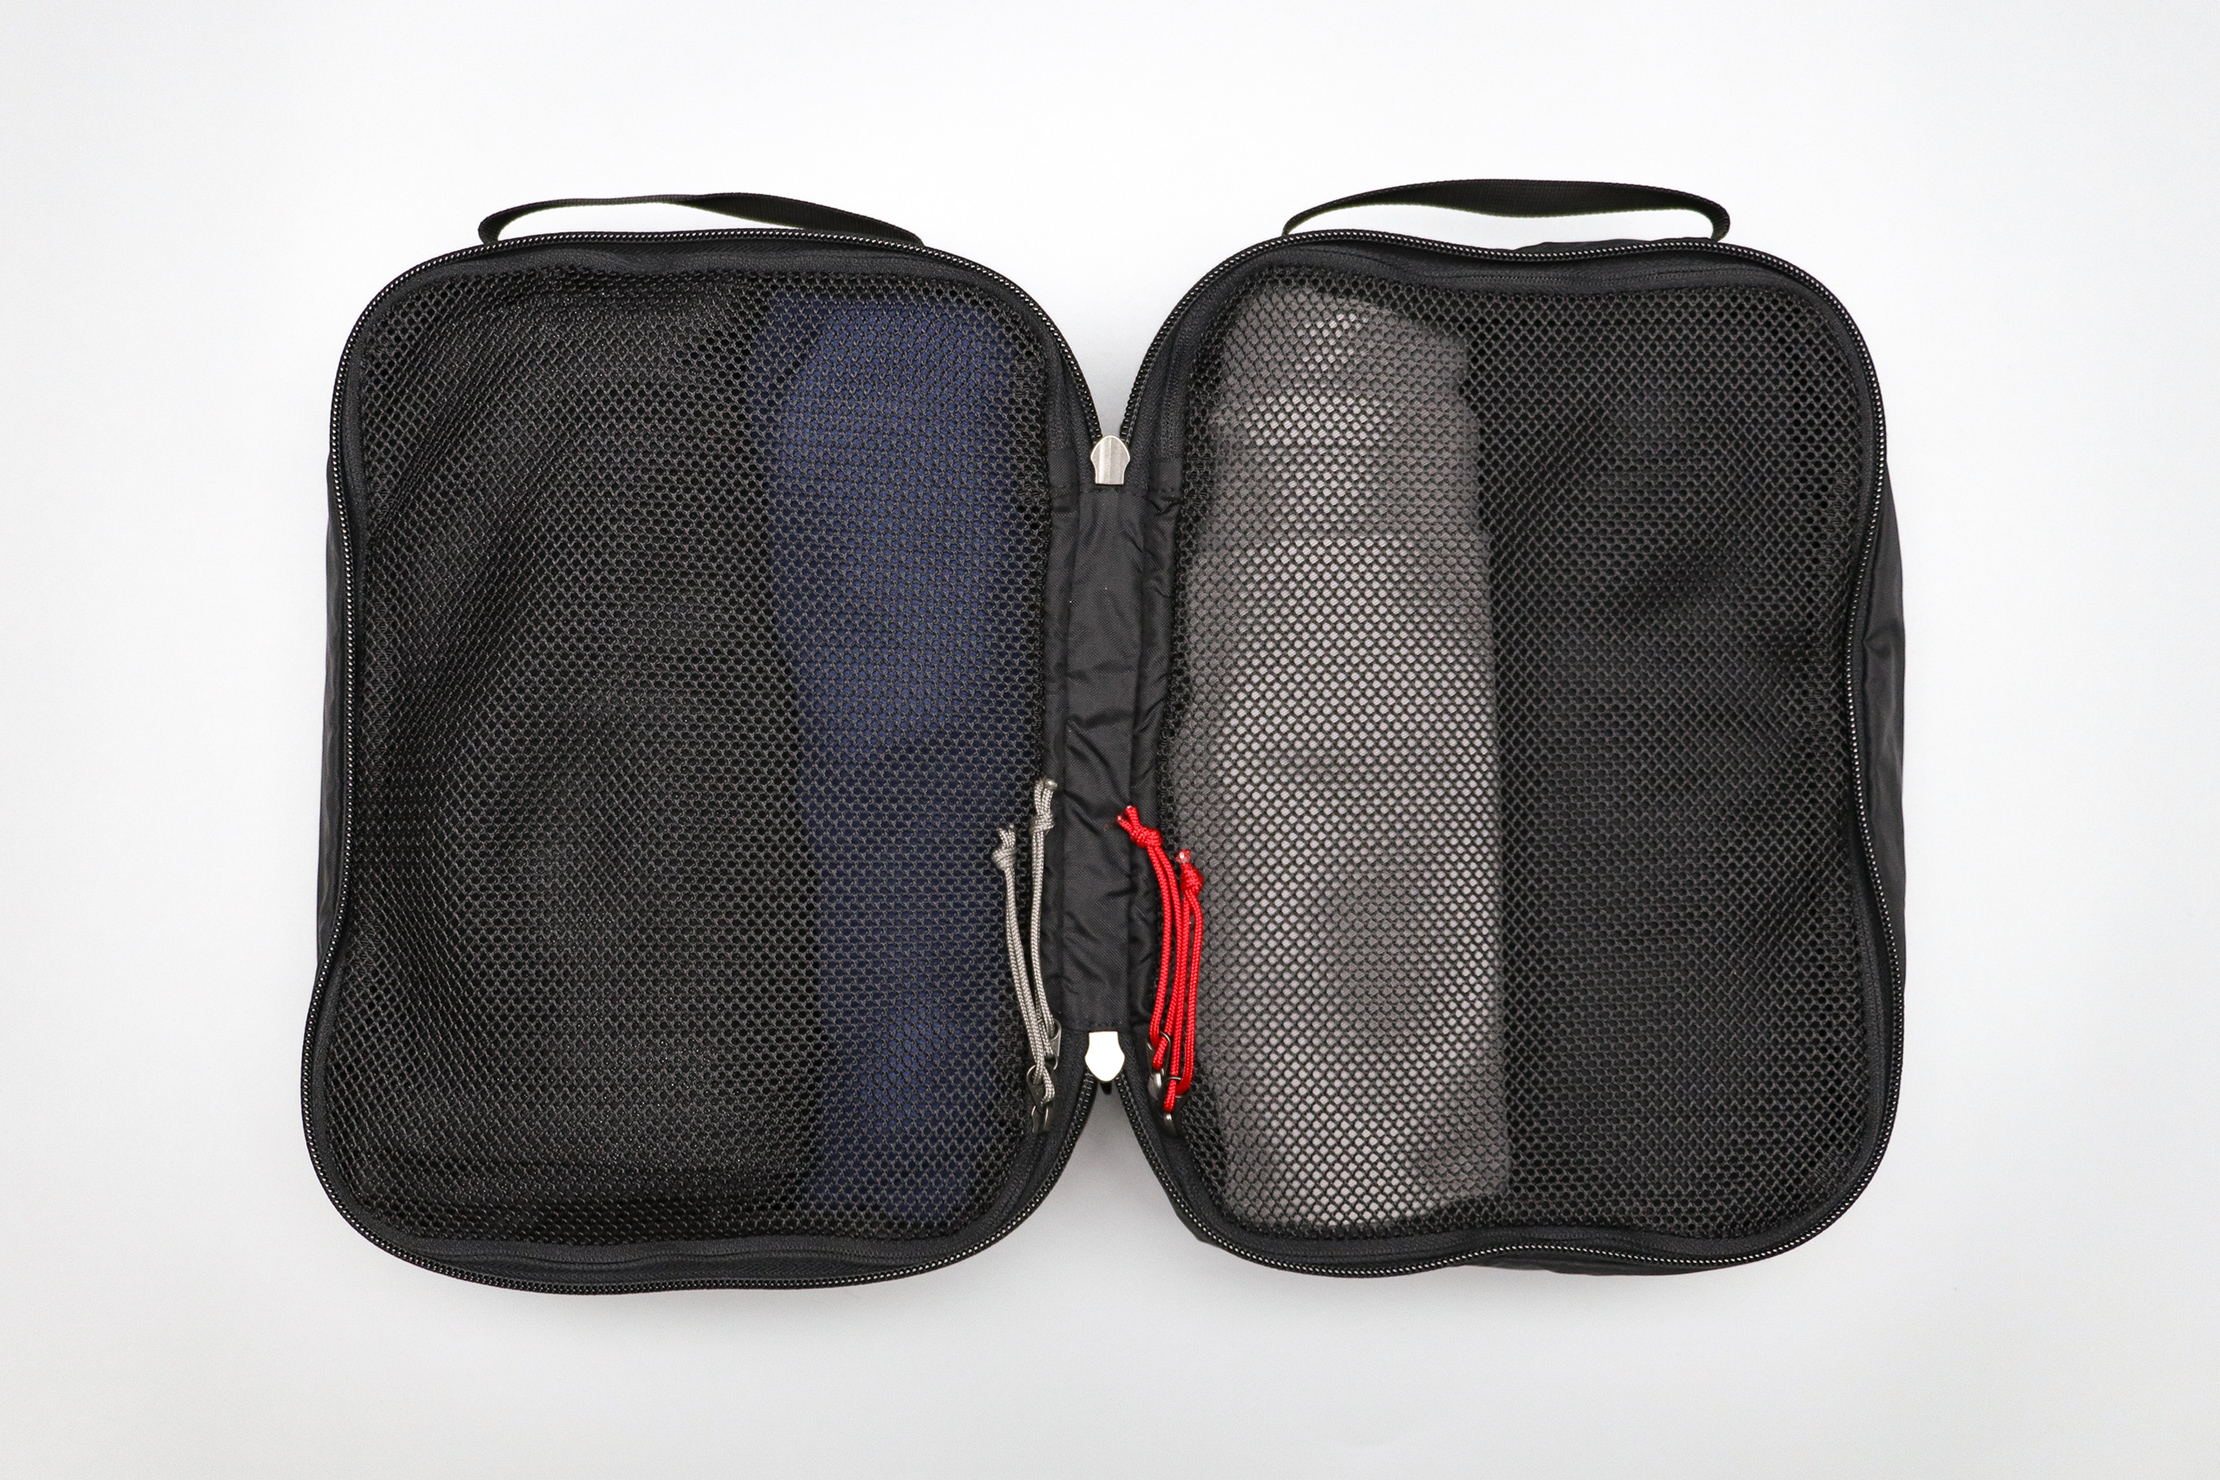 GORUCK Packing Cubes Clamshell Opening